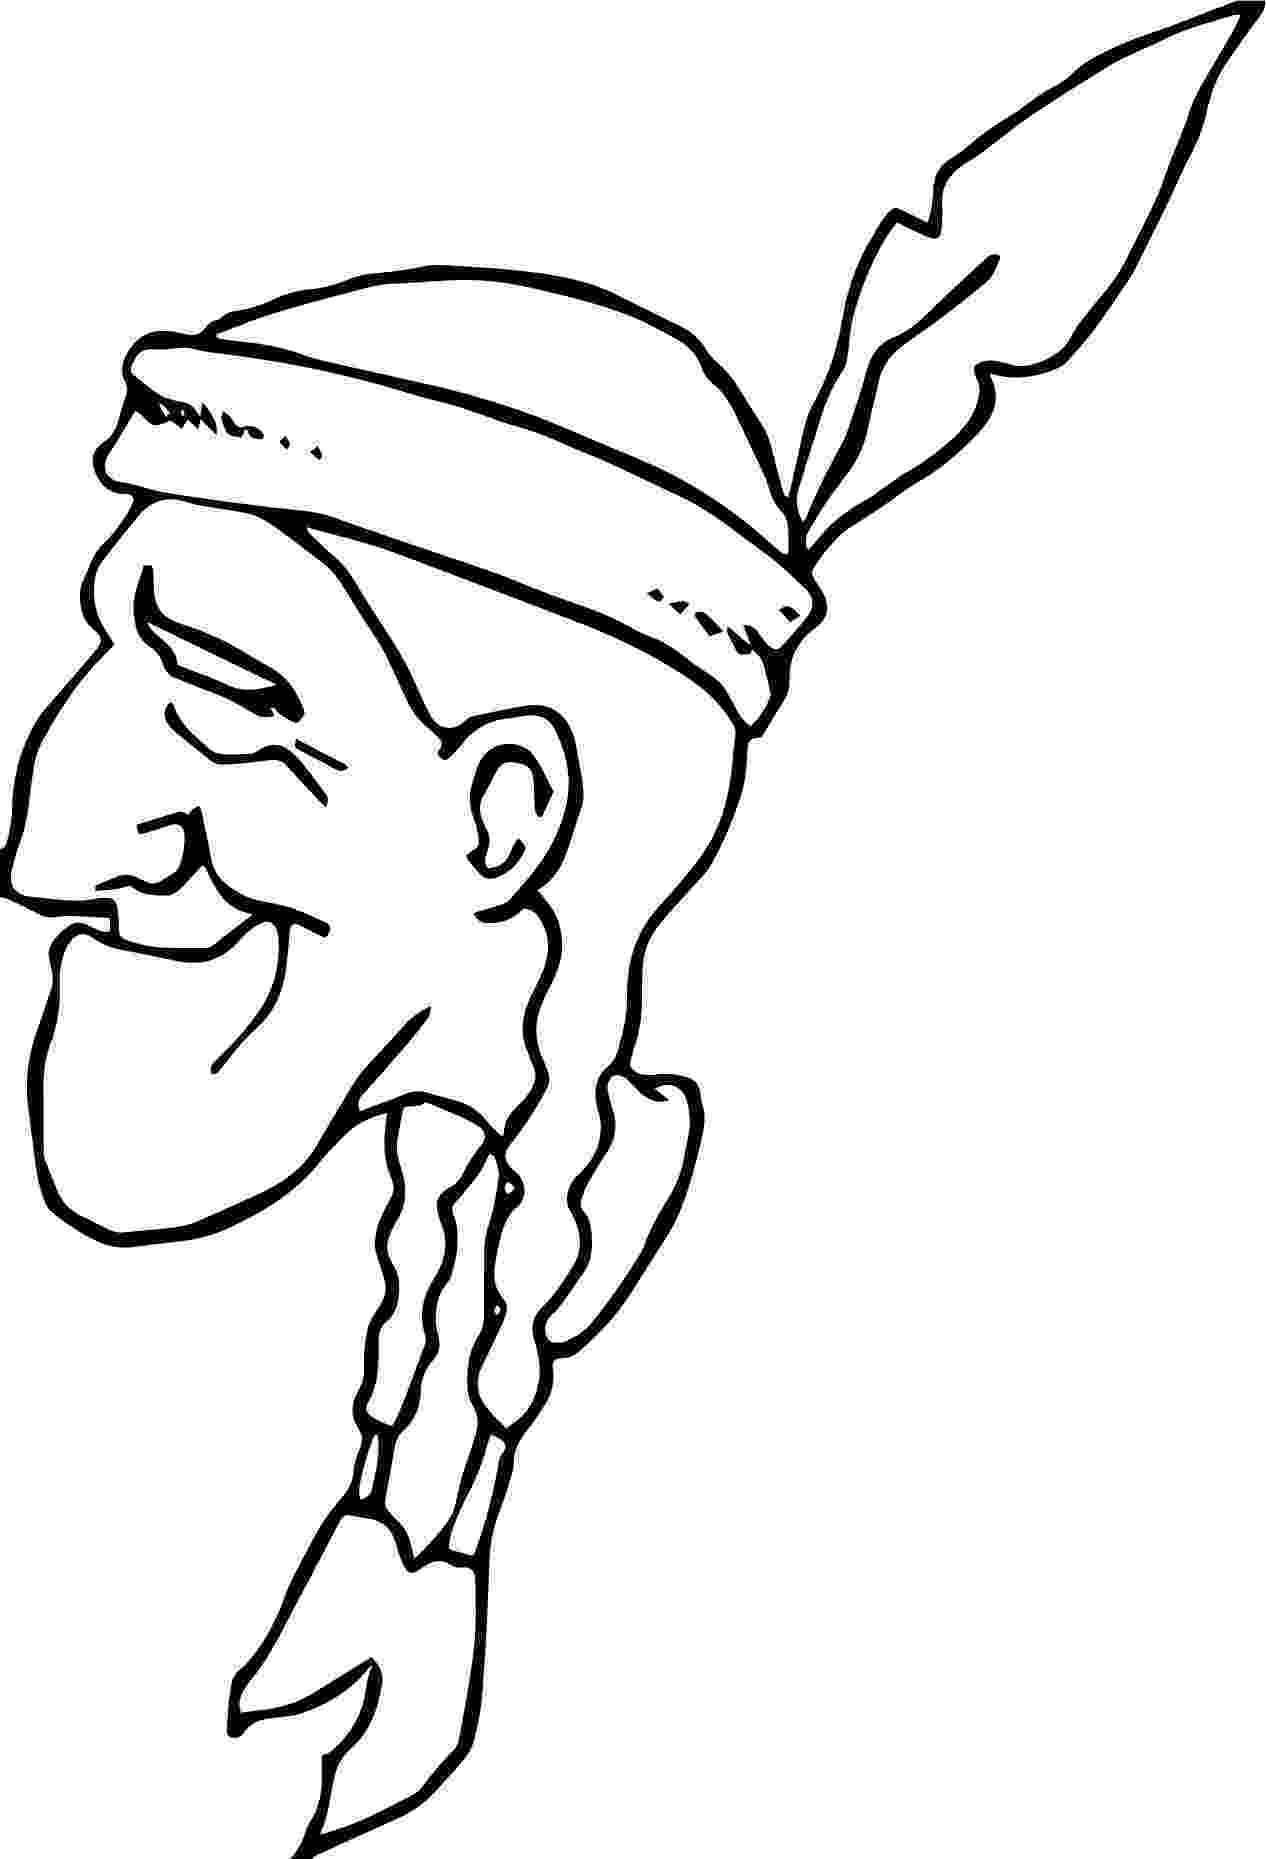 old man coloring pages this old man knick knack paddywhack colouring sheets coloring pages old man